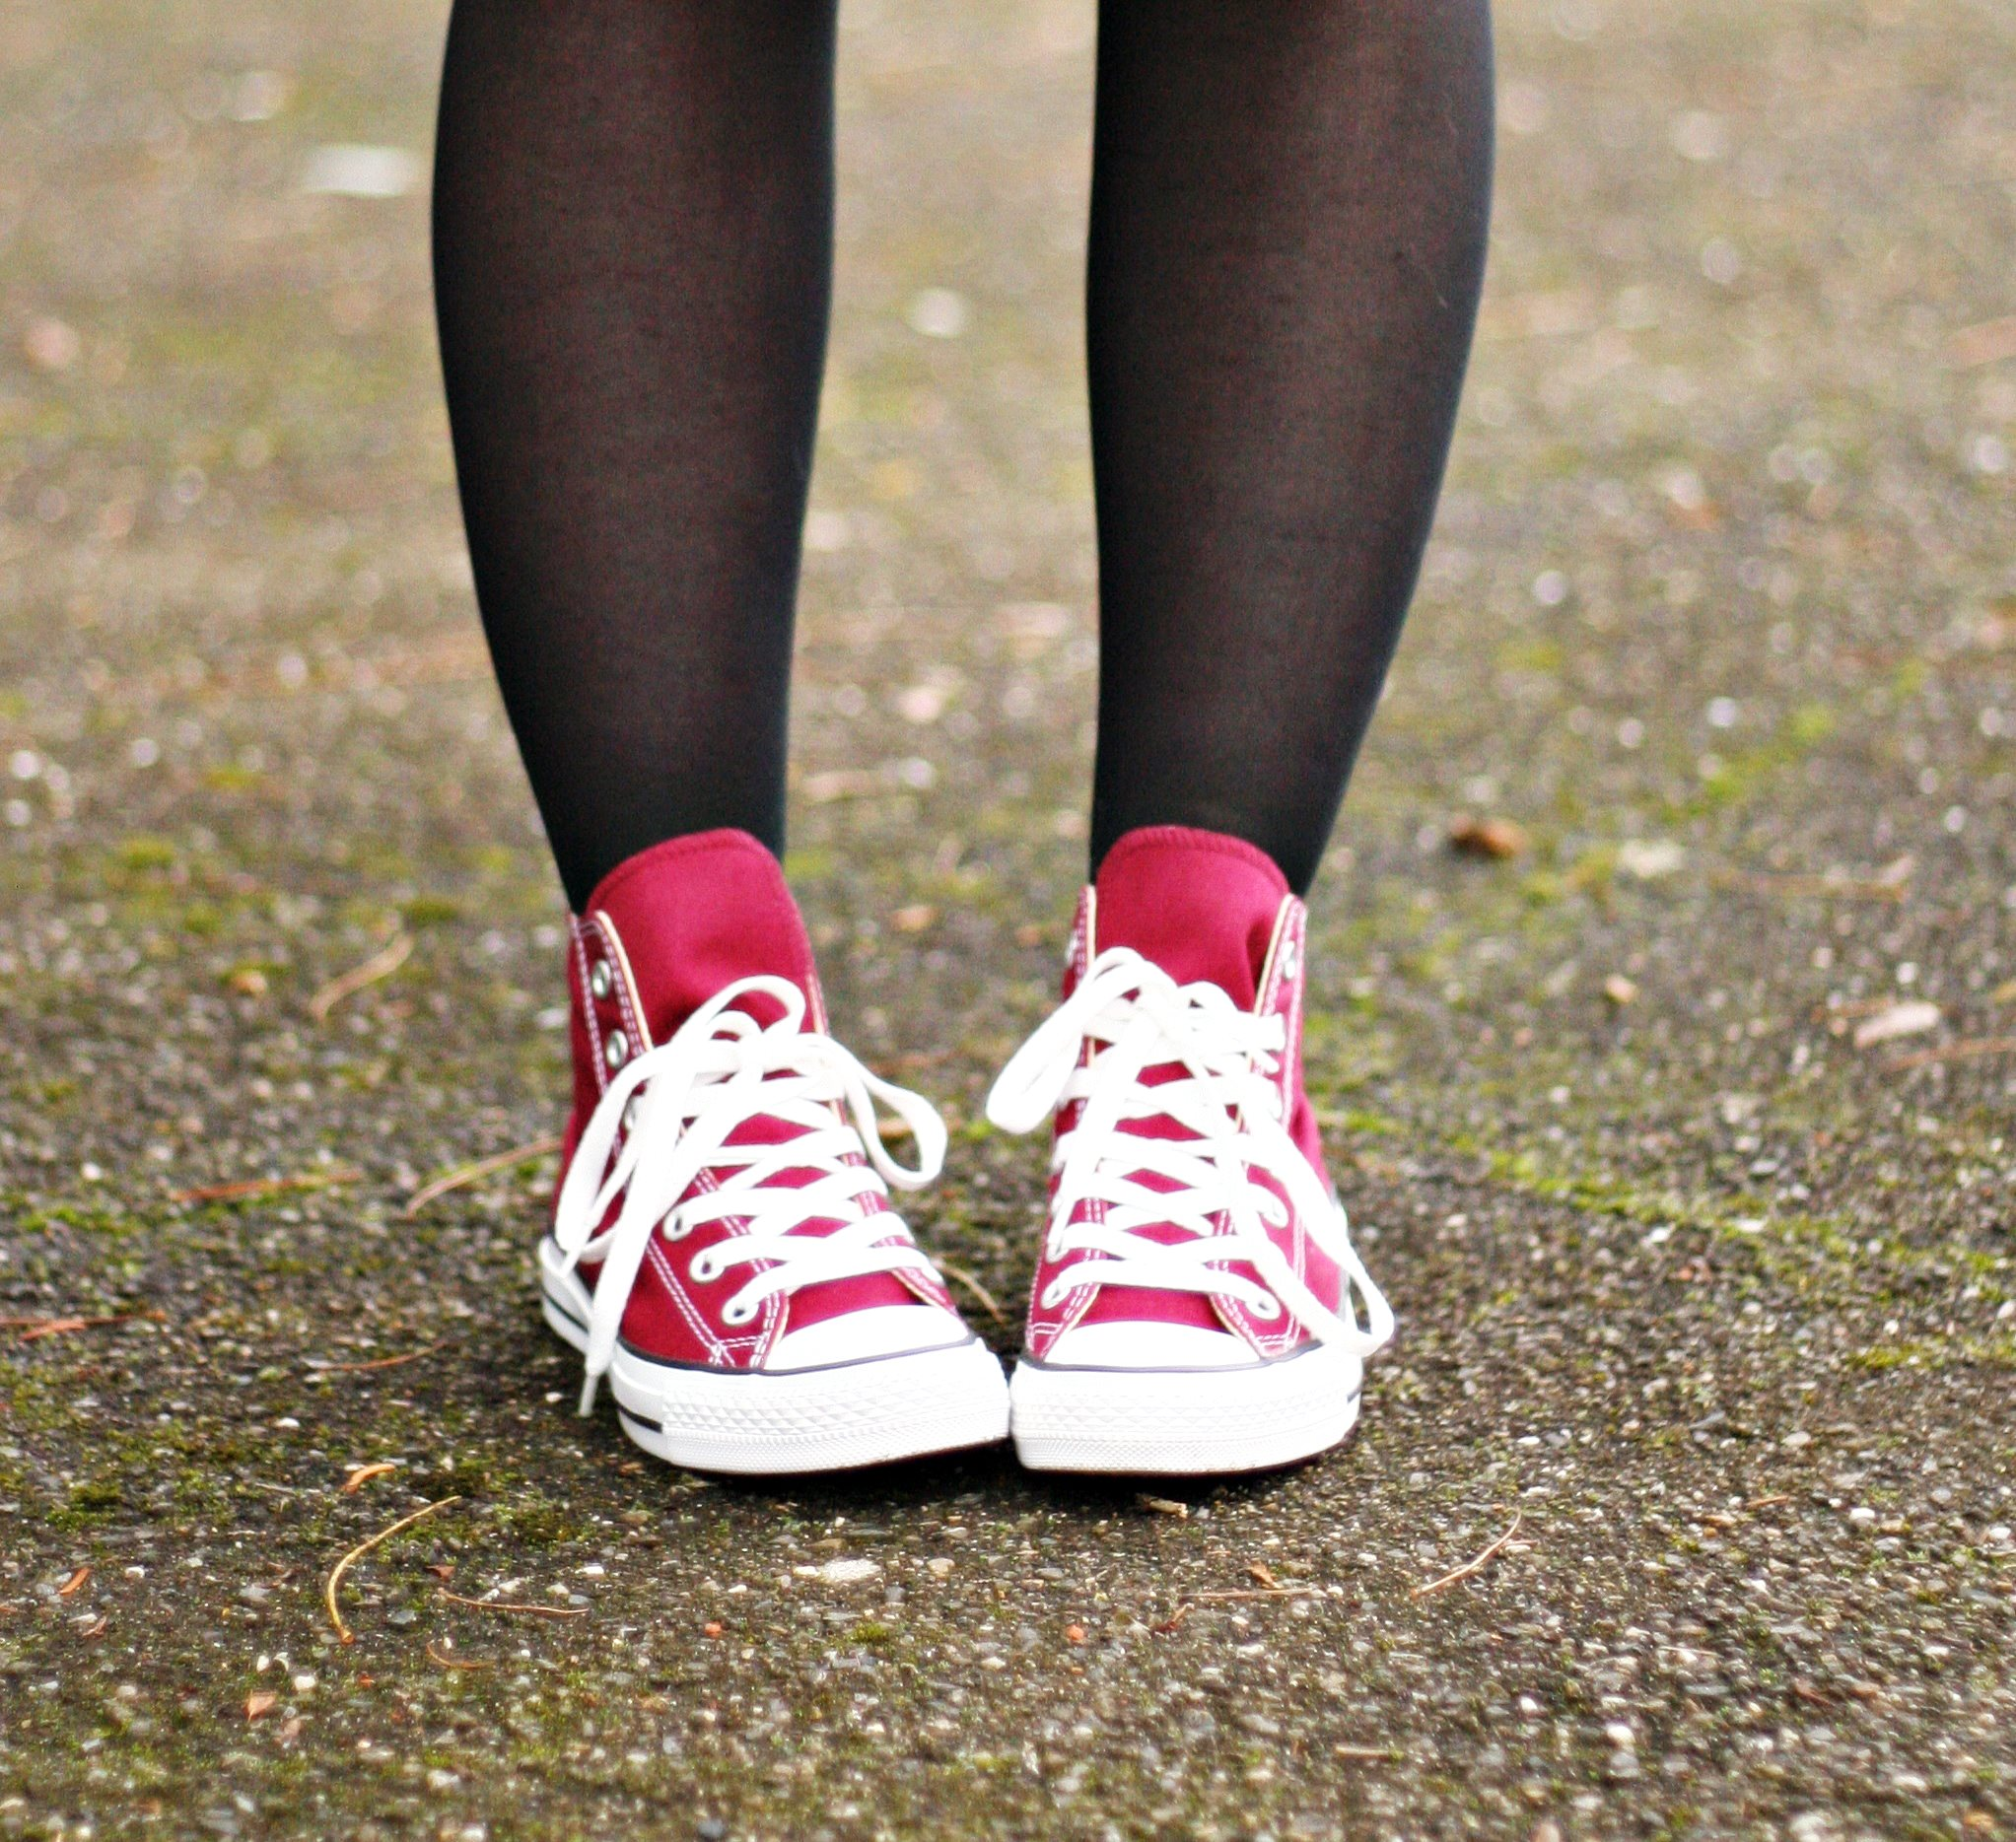 converse-all-star-aurelia-blog-mode-blog-mode